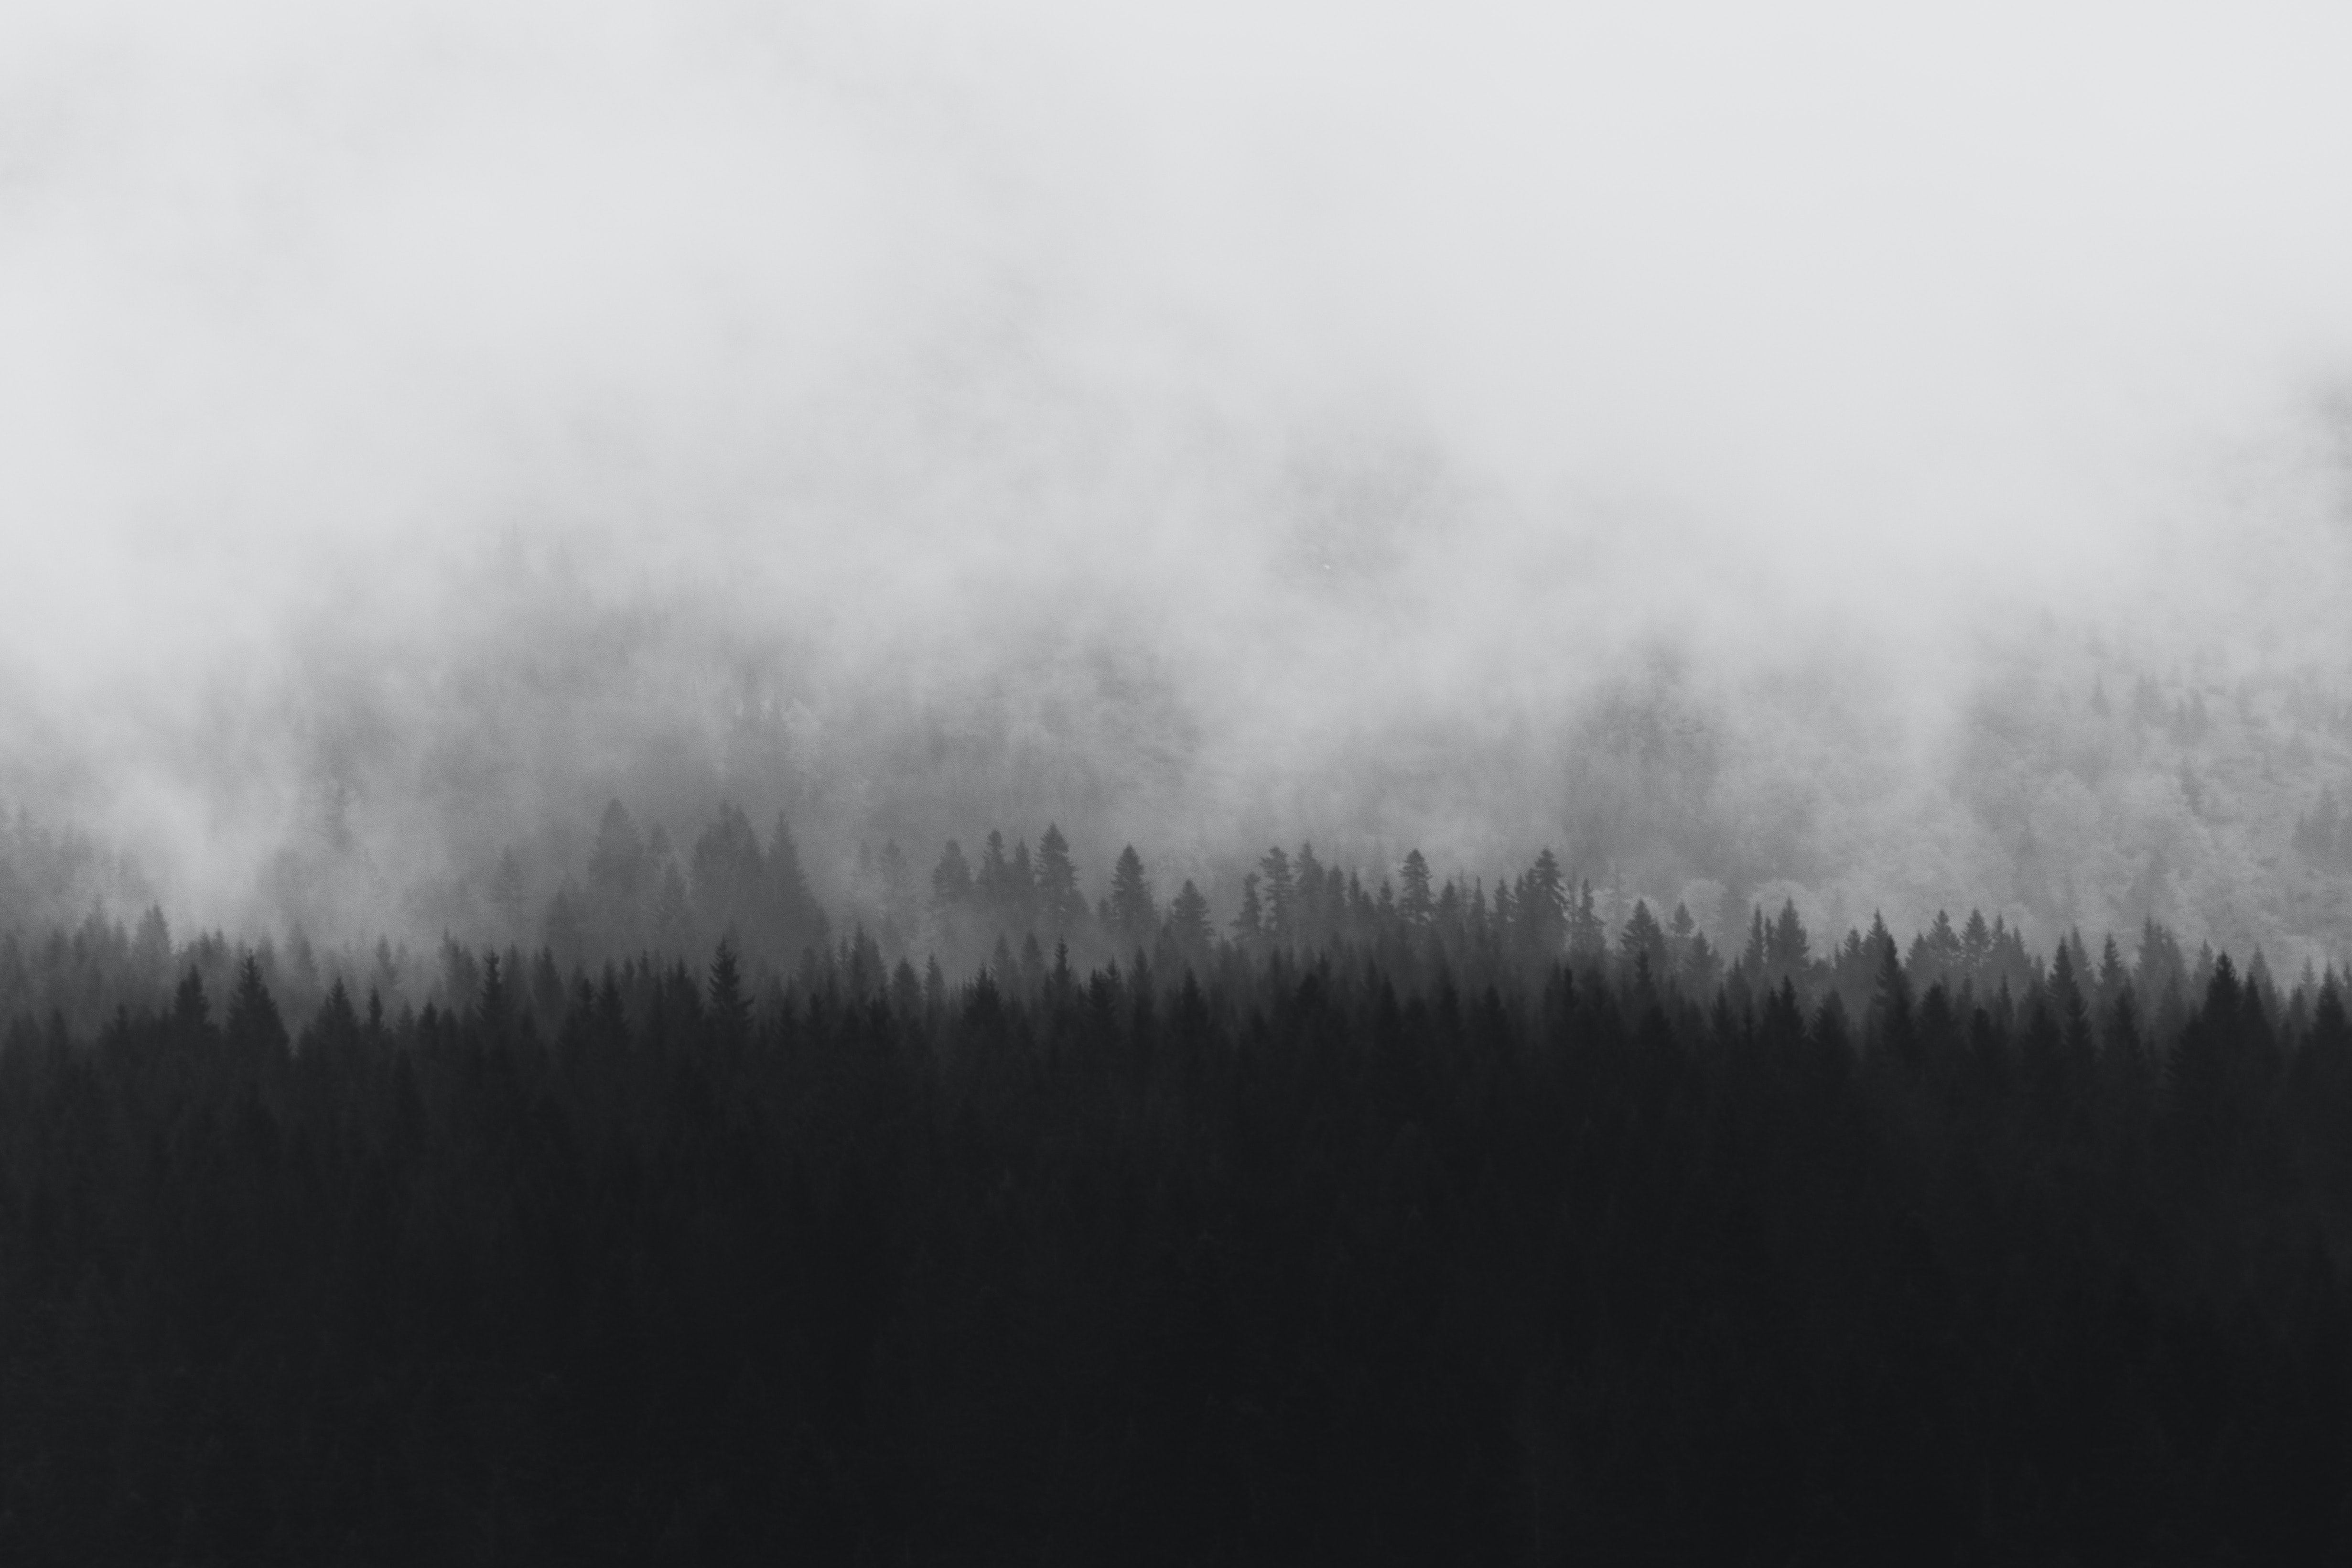 Tree silhouettes shrouded in a fog